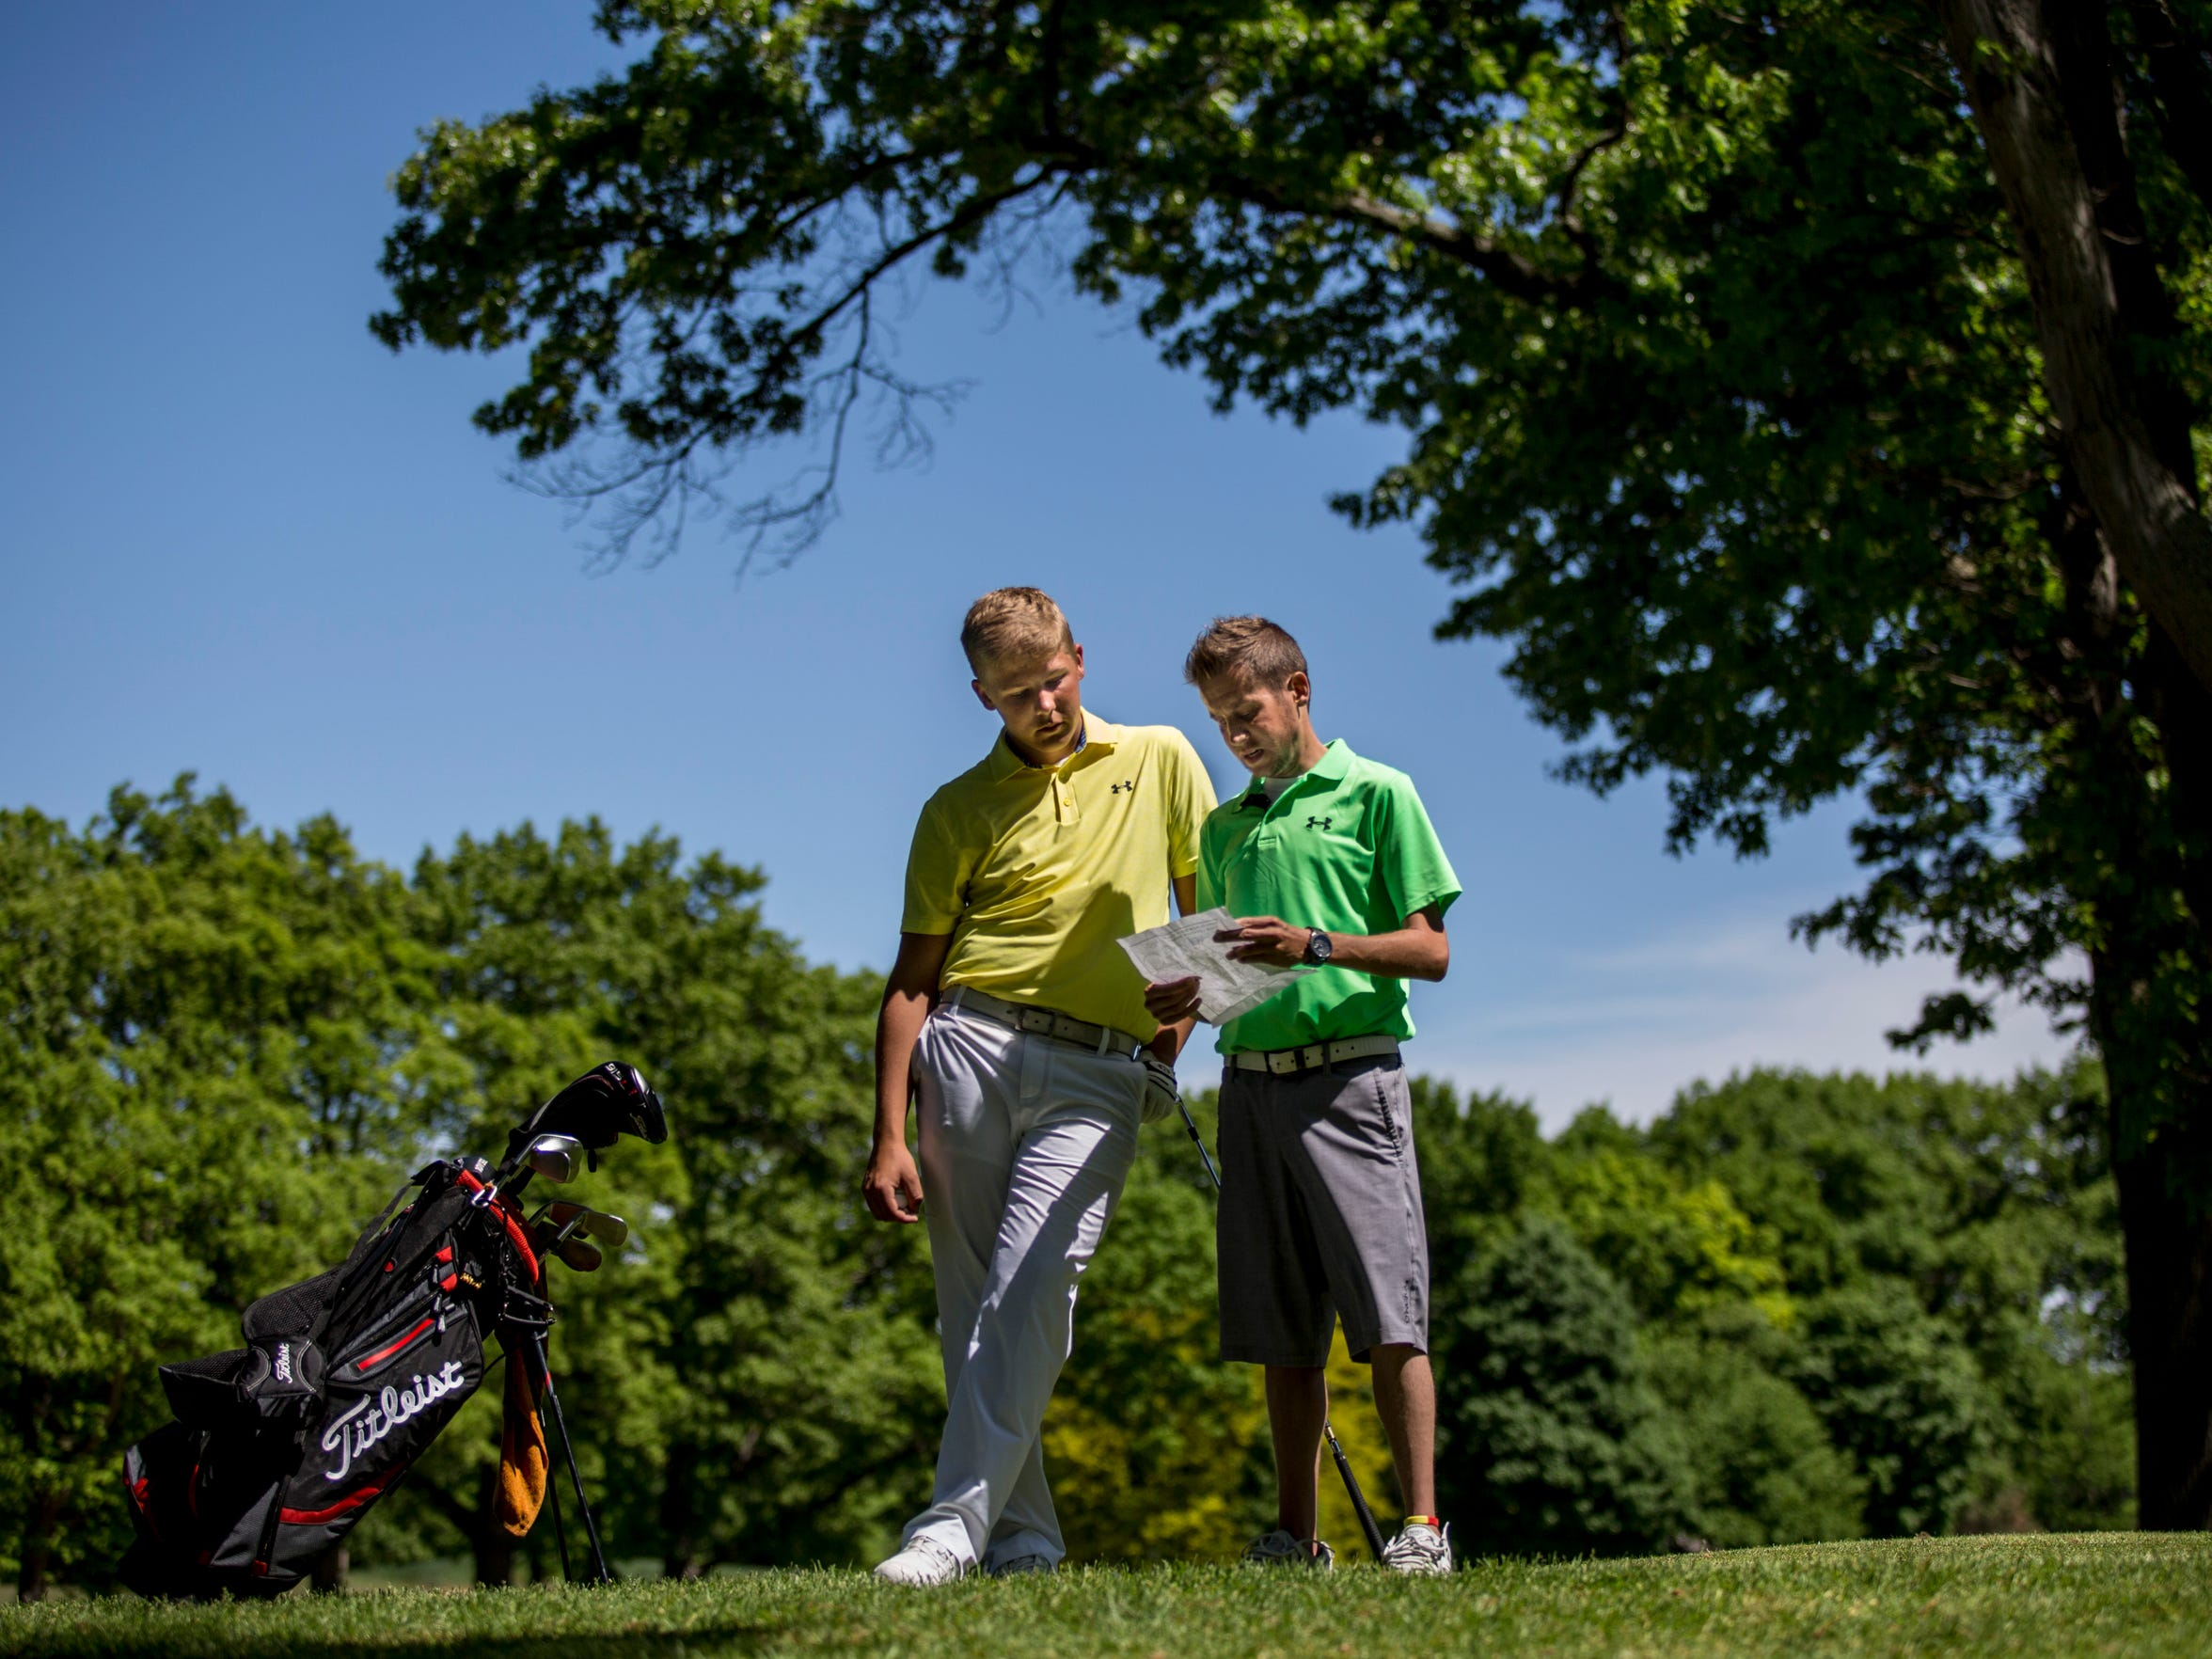 Nick Bailey, right, talks strategy with his brother Kyle Bailey between holes Friday, June 3, 2016 at the Port Huron Golf Club.